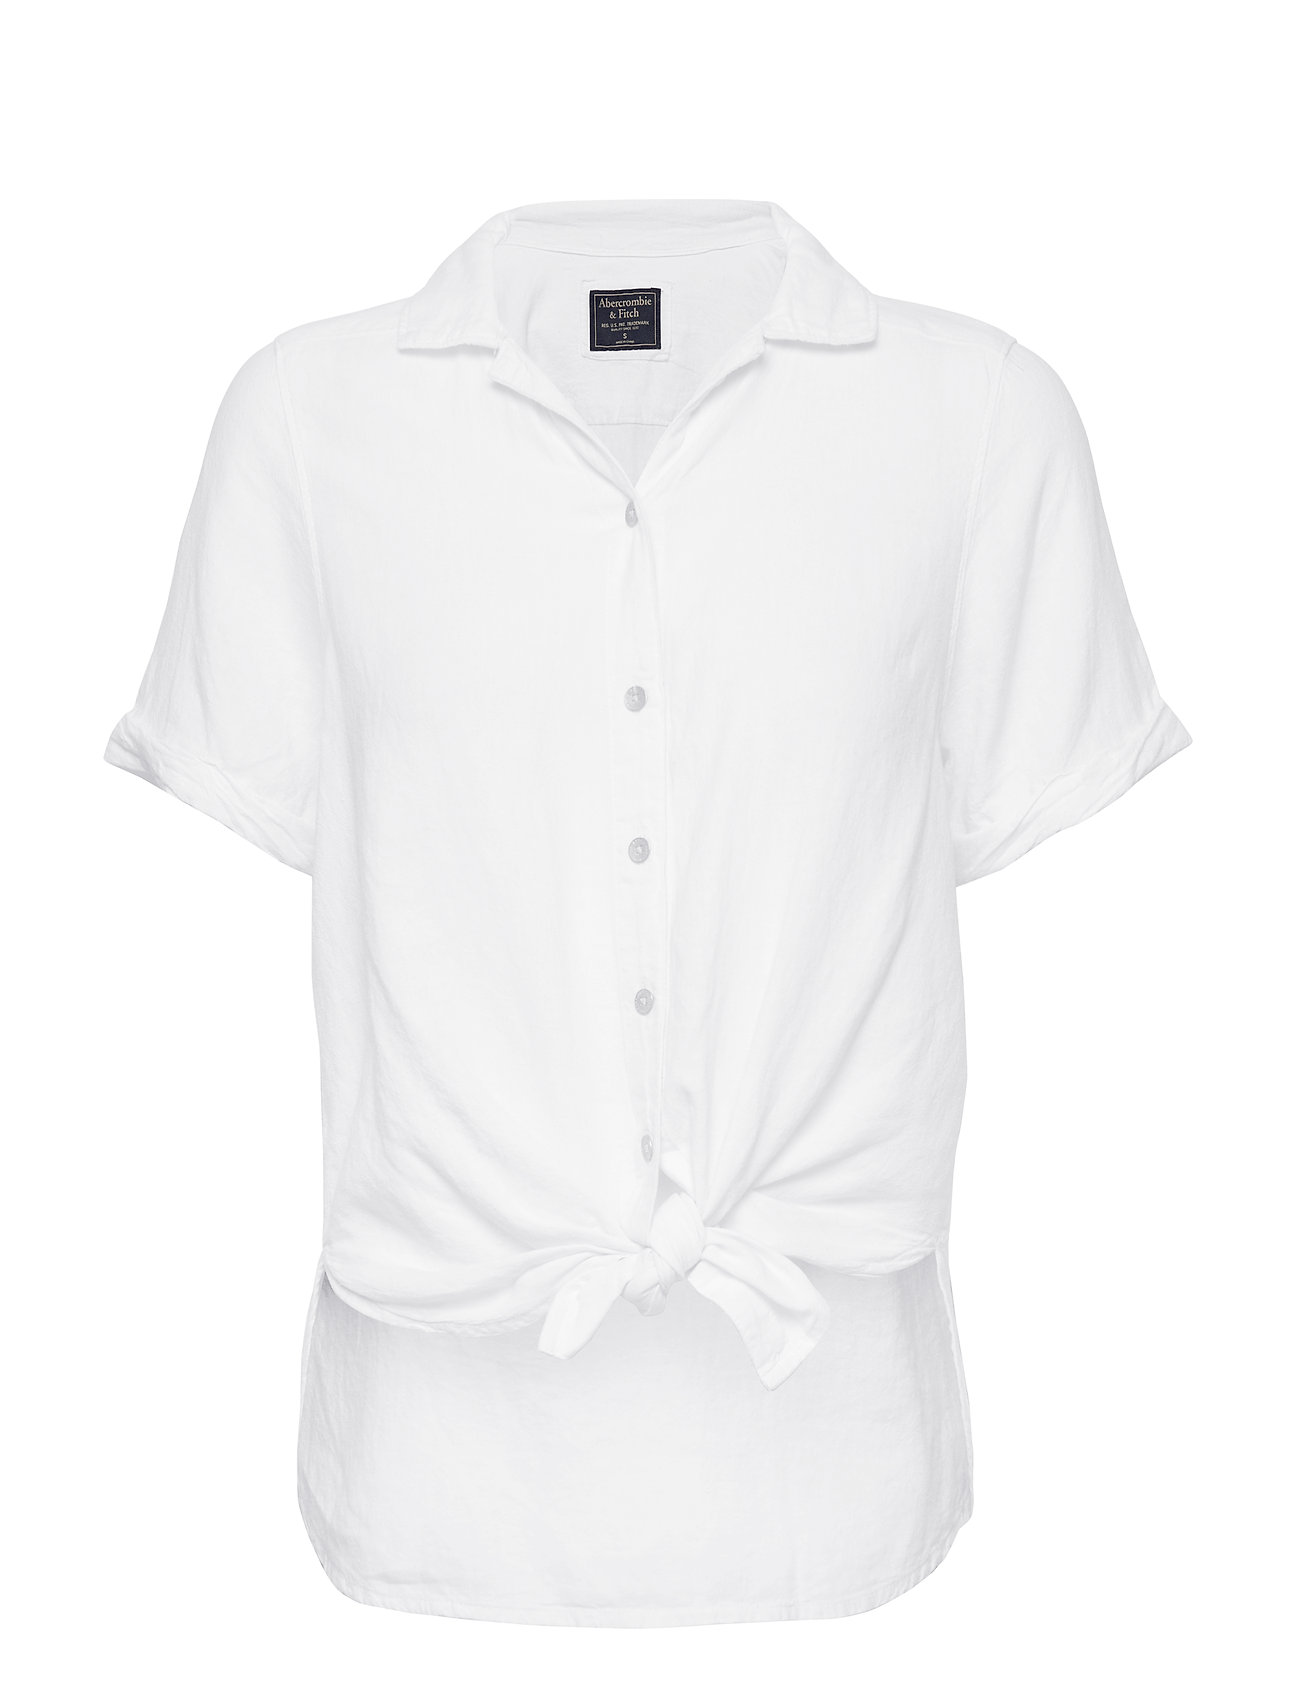 Abercrombie & Fitch Linen Tie Front Shirt - WHITE